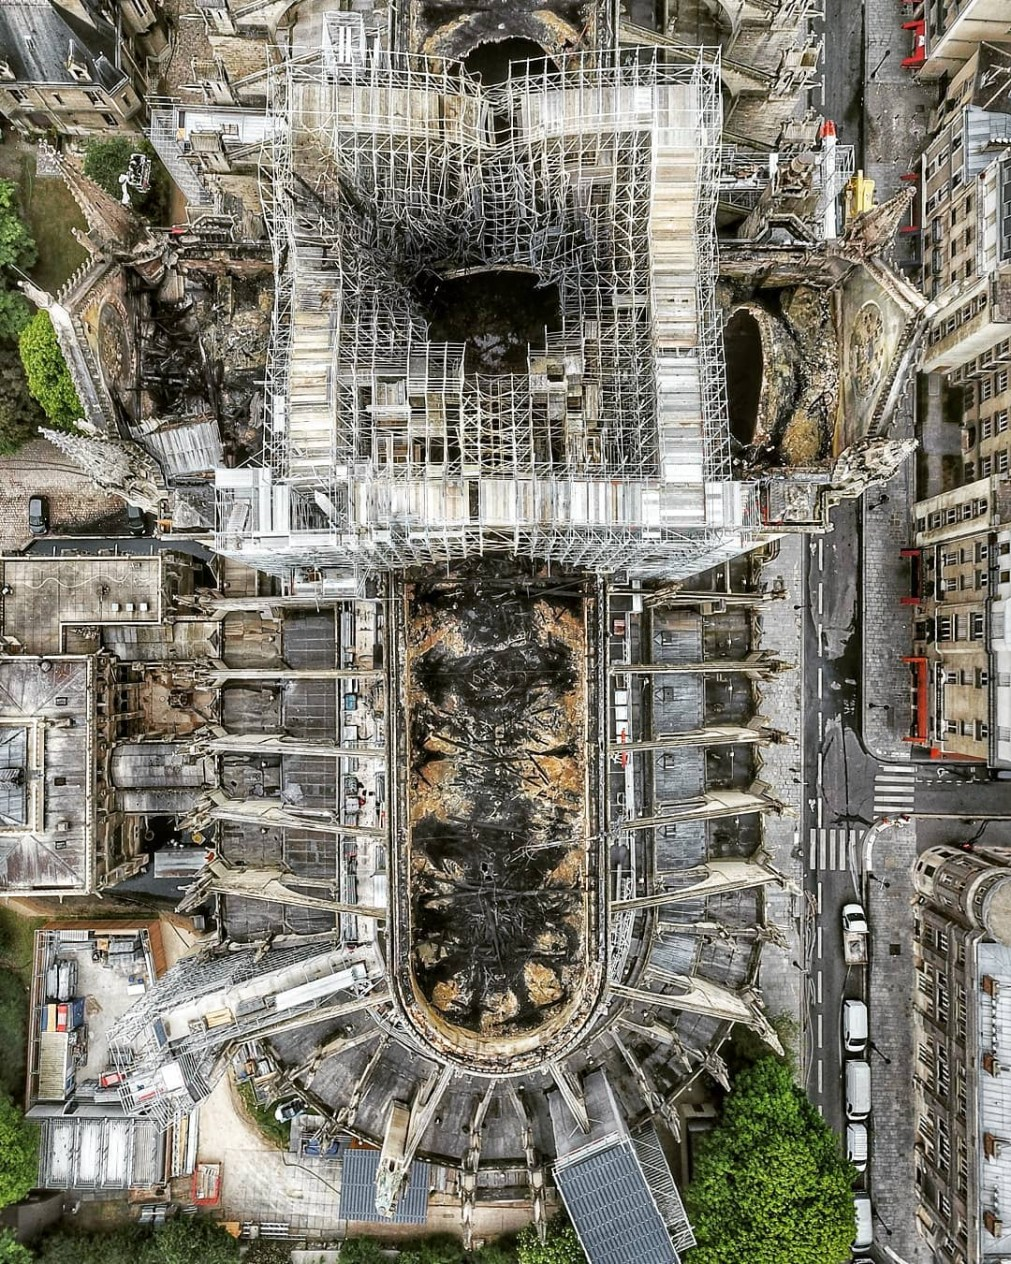 Heroic freighters saved the iconic cathedral from collapsing in a vital 30 minute battle with the blaze